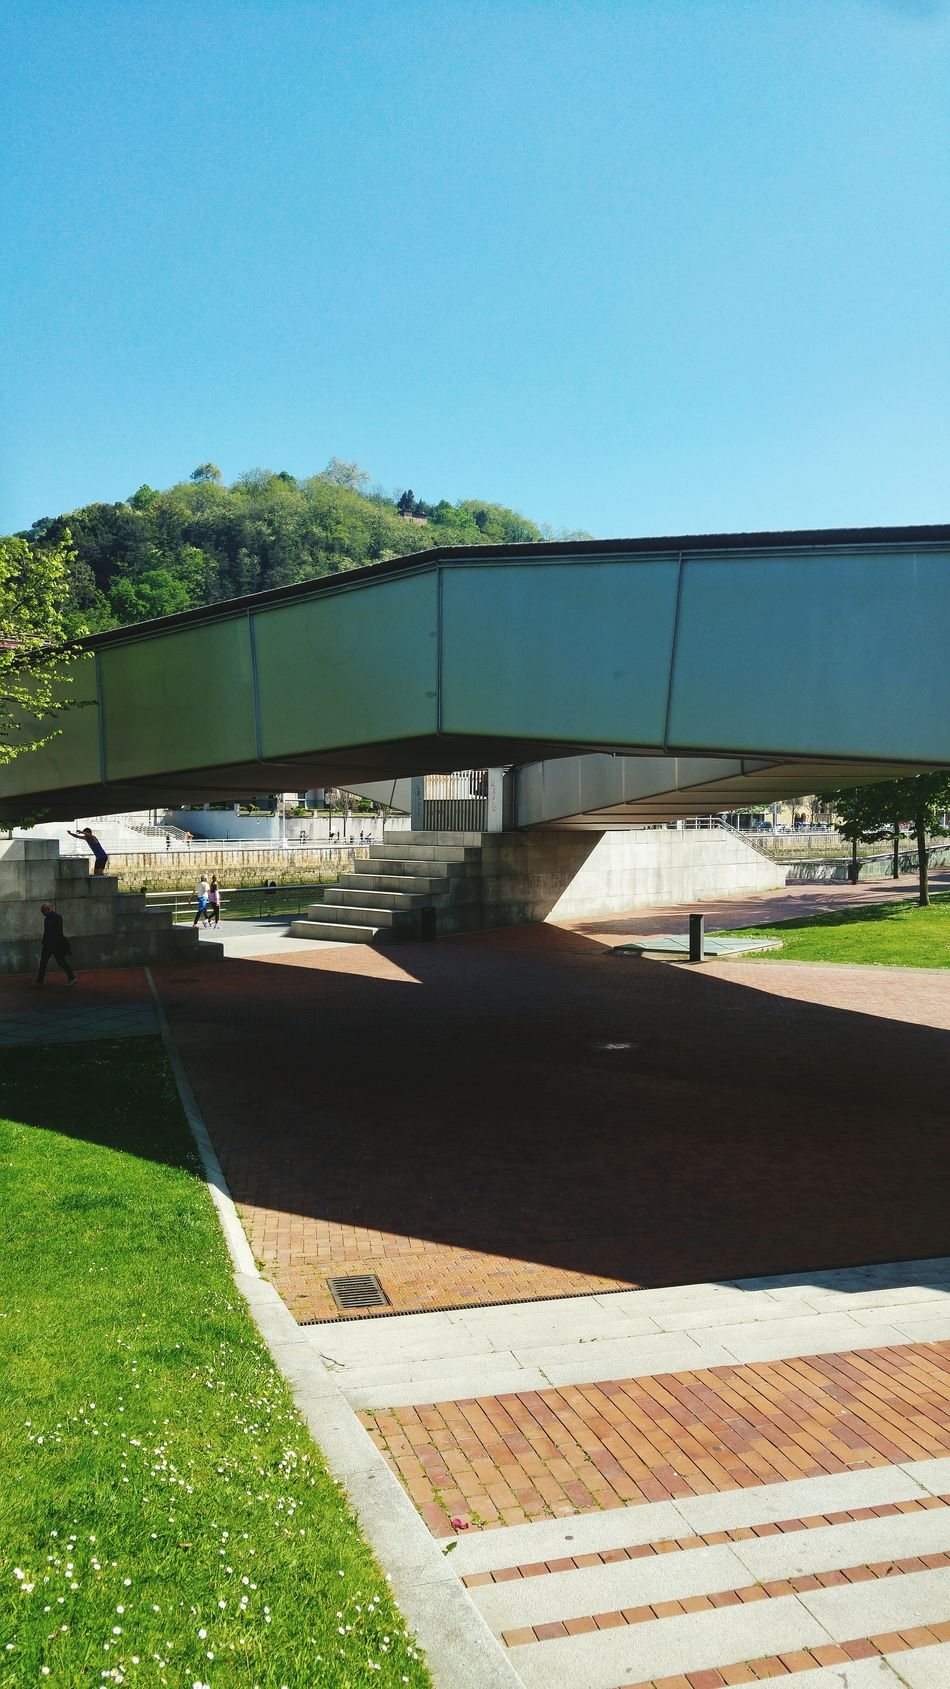 Outdoors Sunny Day Architecture Bilbao Nature Bridge View Bridges Sunlight And Shadows Sunlight ☀ Sunlight, Shades And Shadows Contrast Of Shadows Shadow And Light Light And Shade